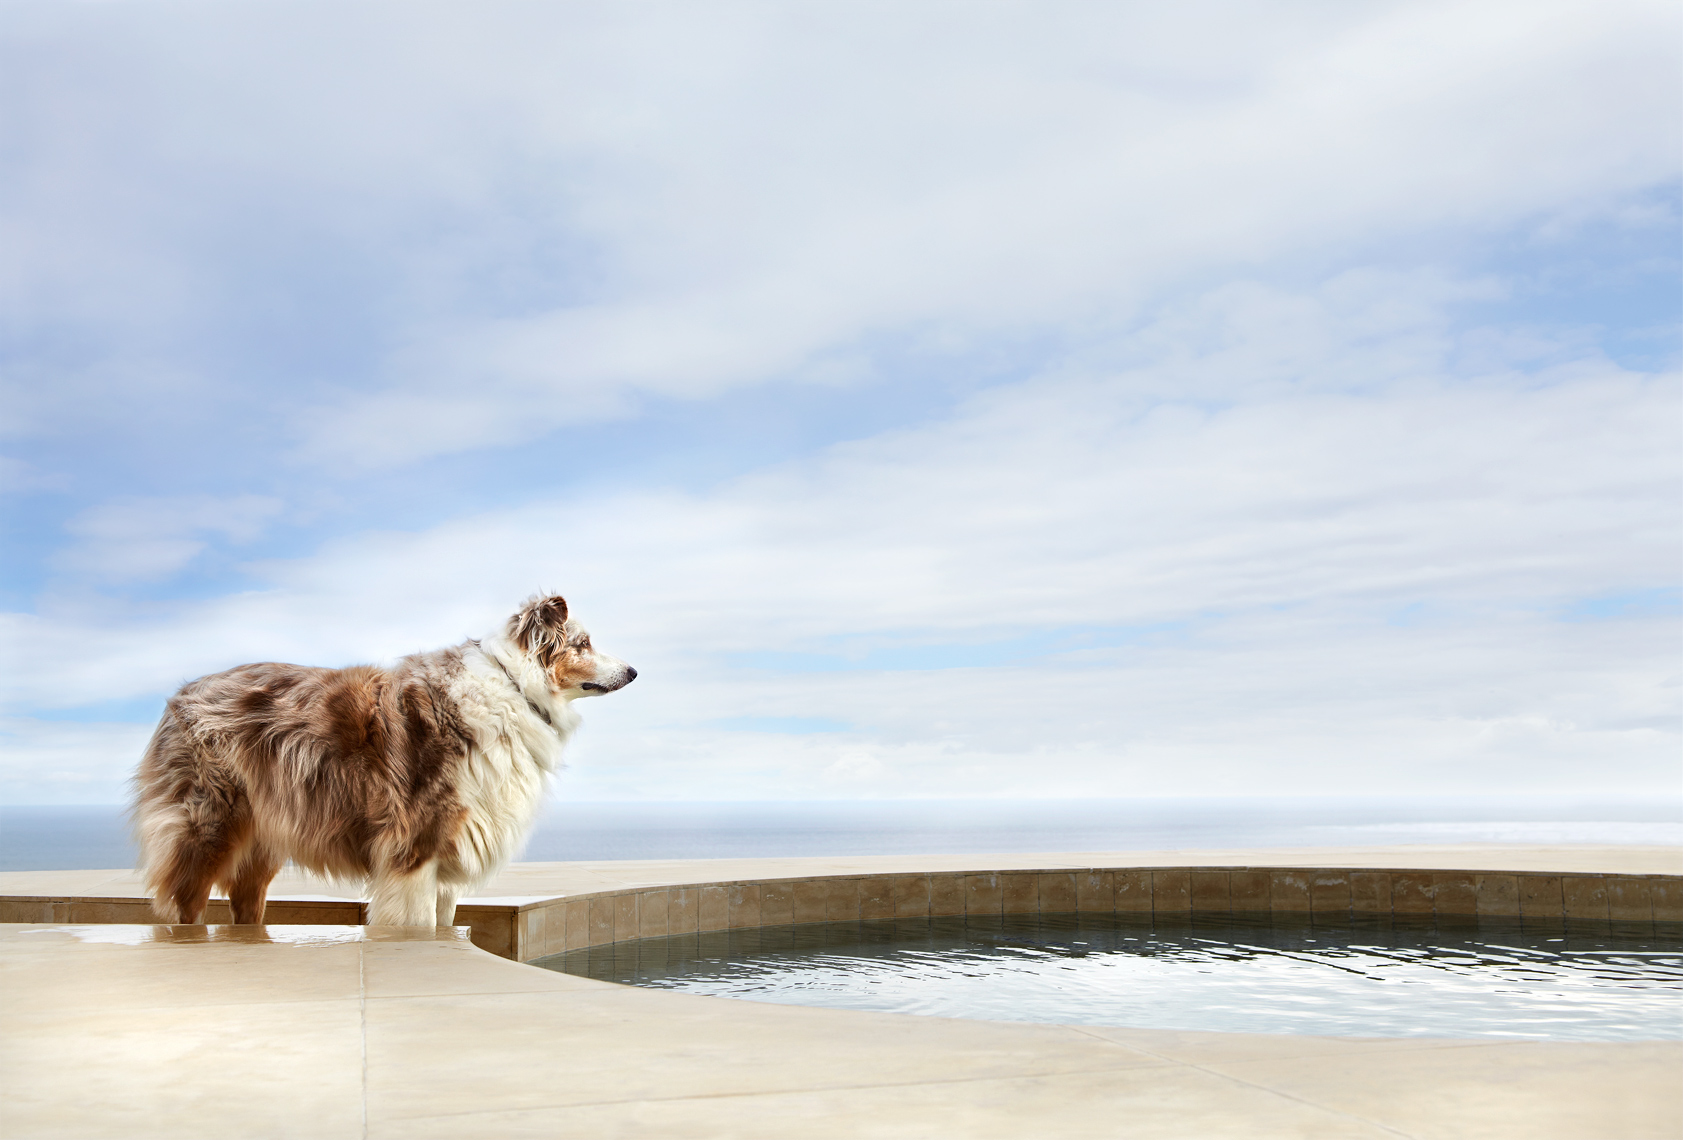 Australian Shepherd at pool